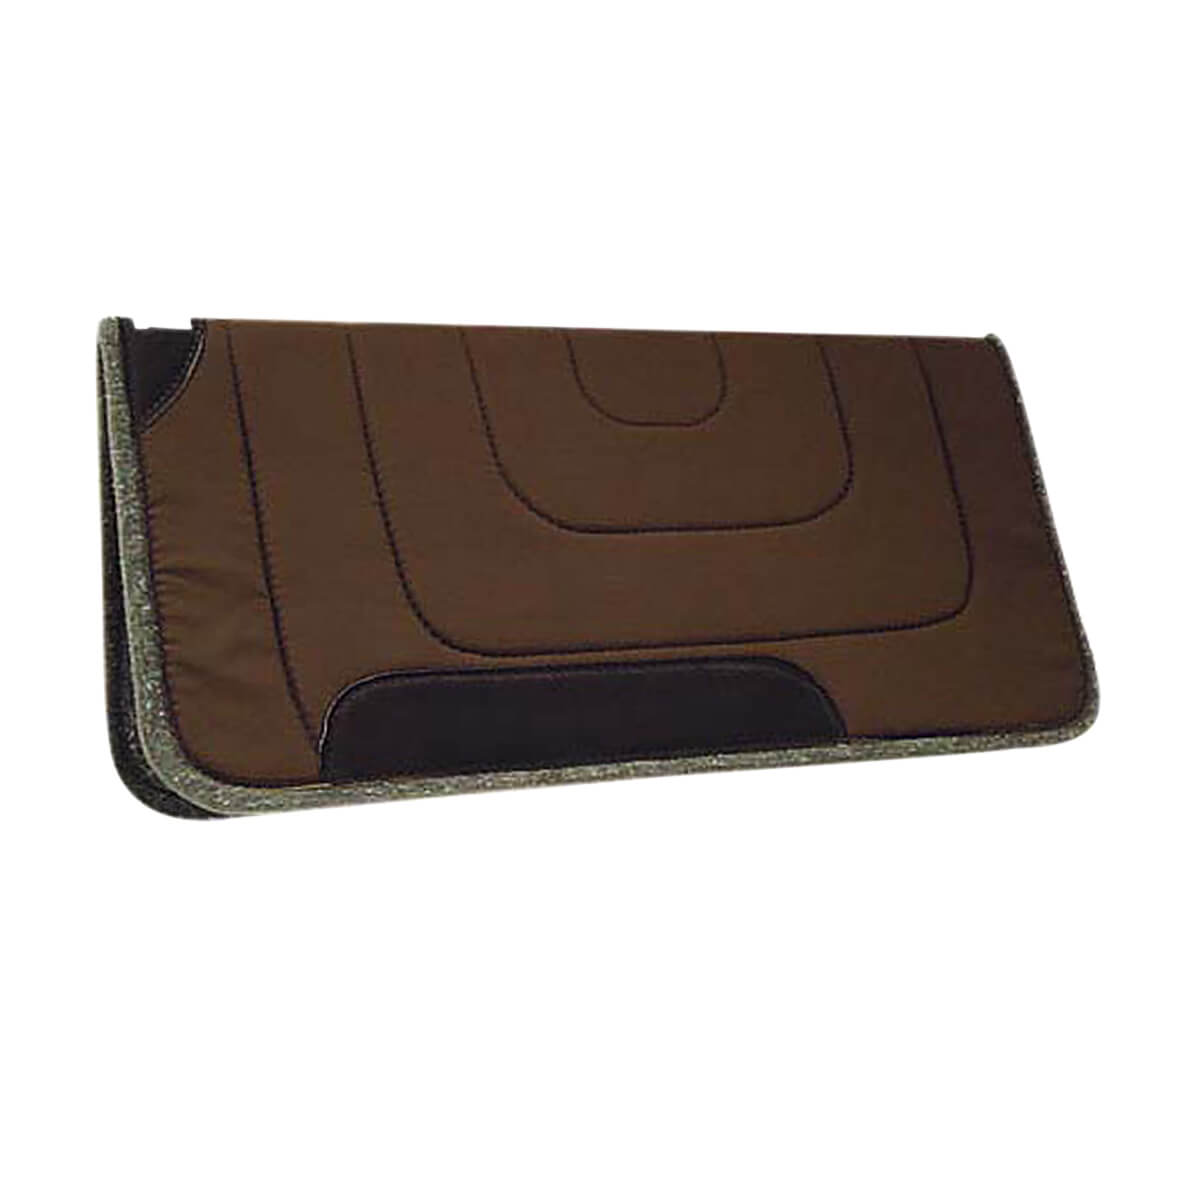 Diamond Wool The Rancher Saddle Pad